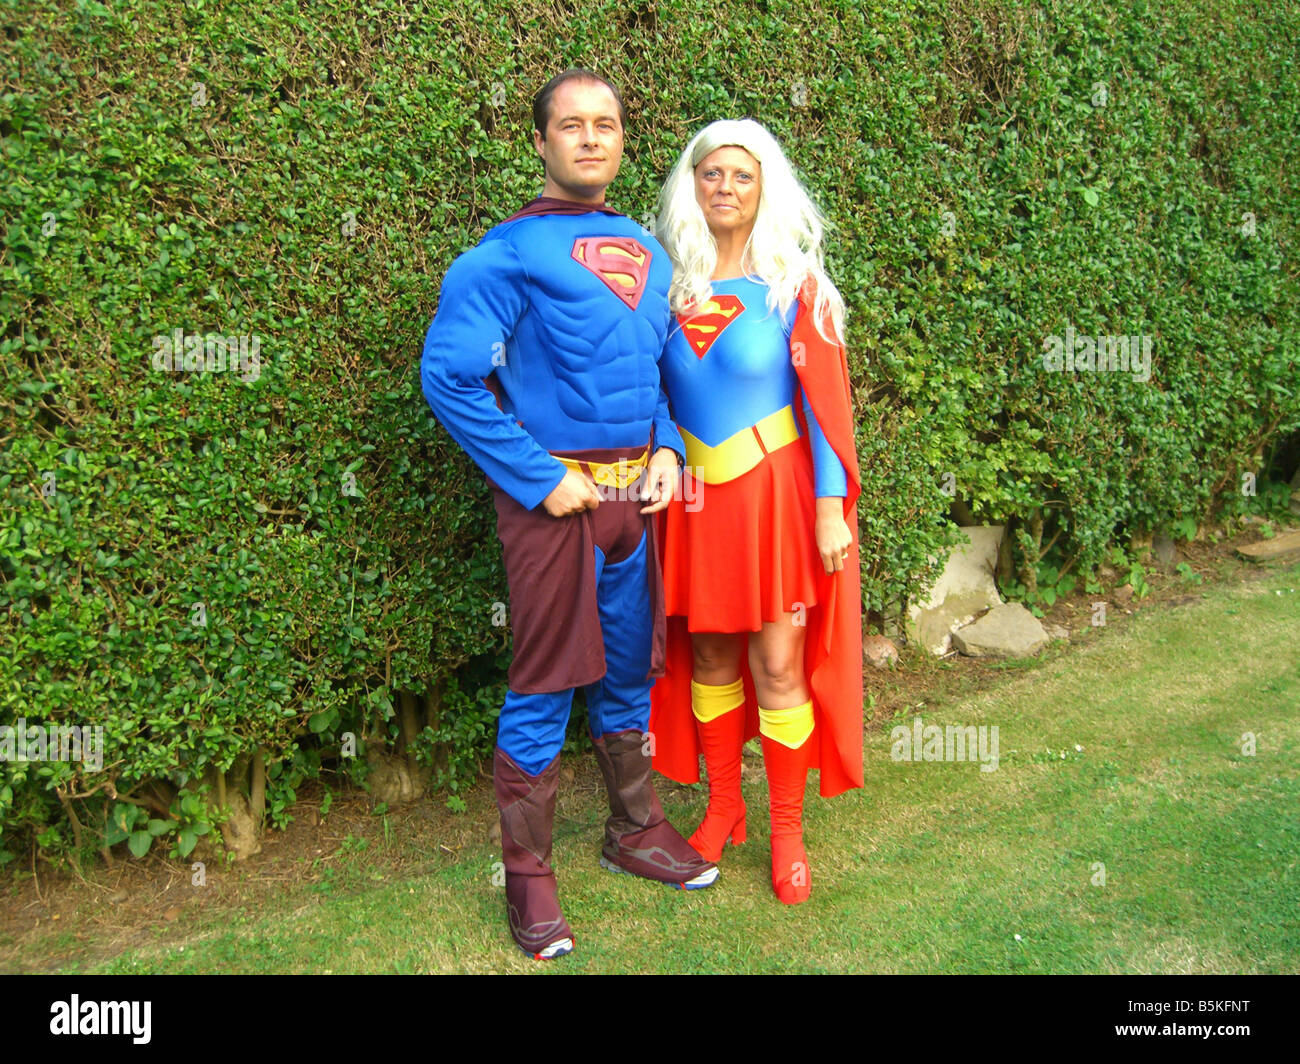 Superman and superwoman ready to attend a fancy dress party.  sc 1 st  Alamy & Superman and superwoman ready to attend a fancy dress party Stock ...